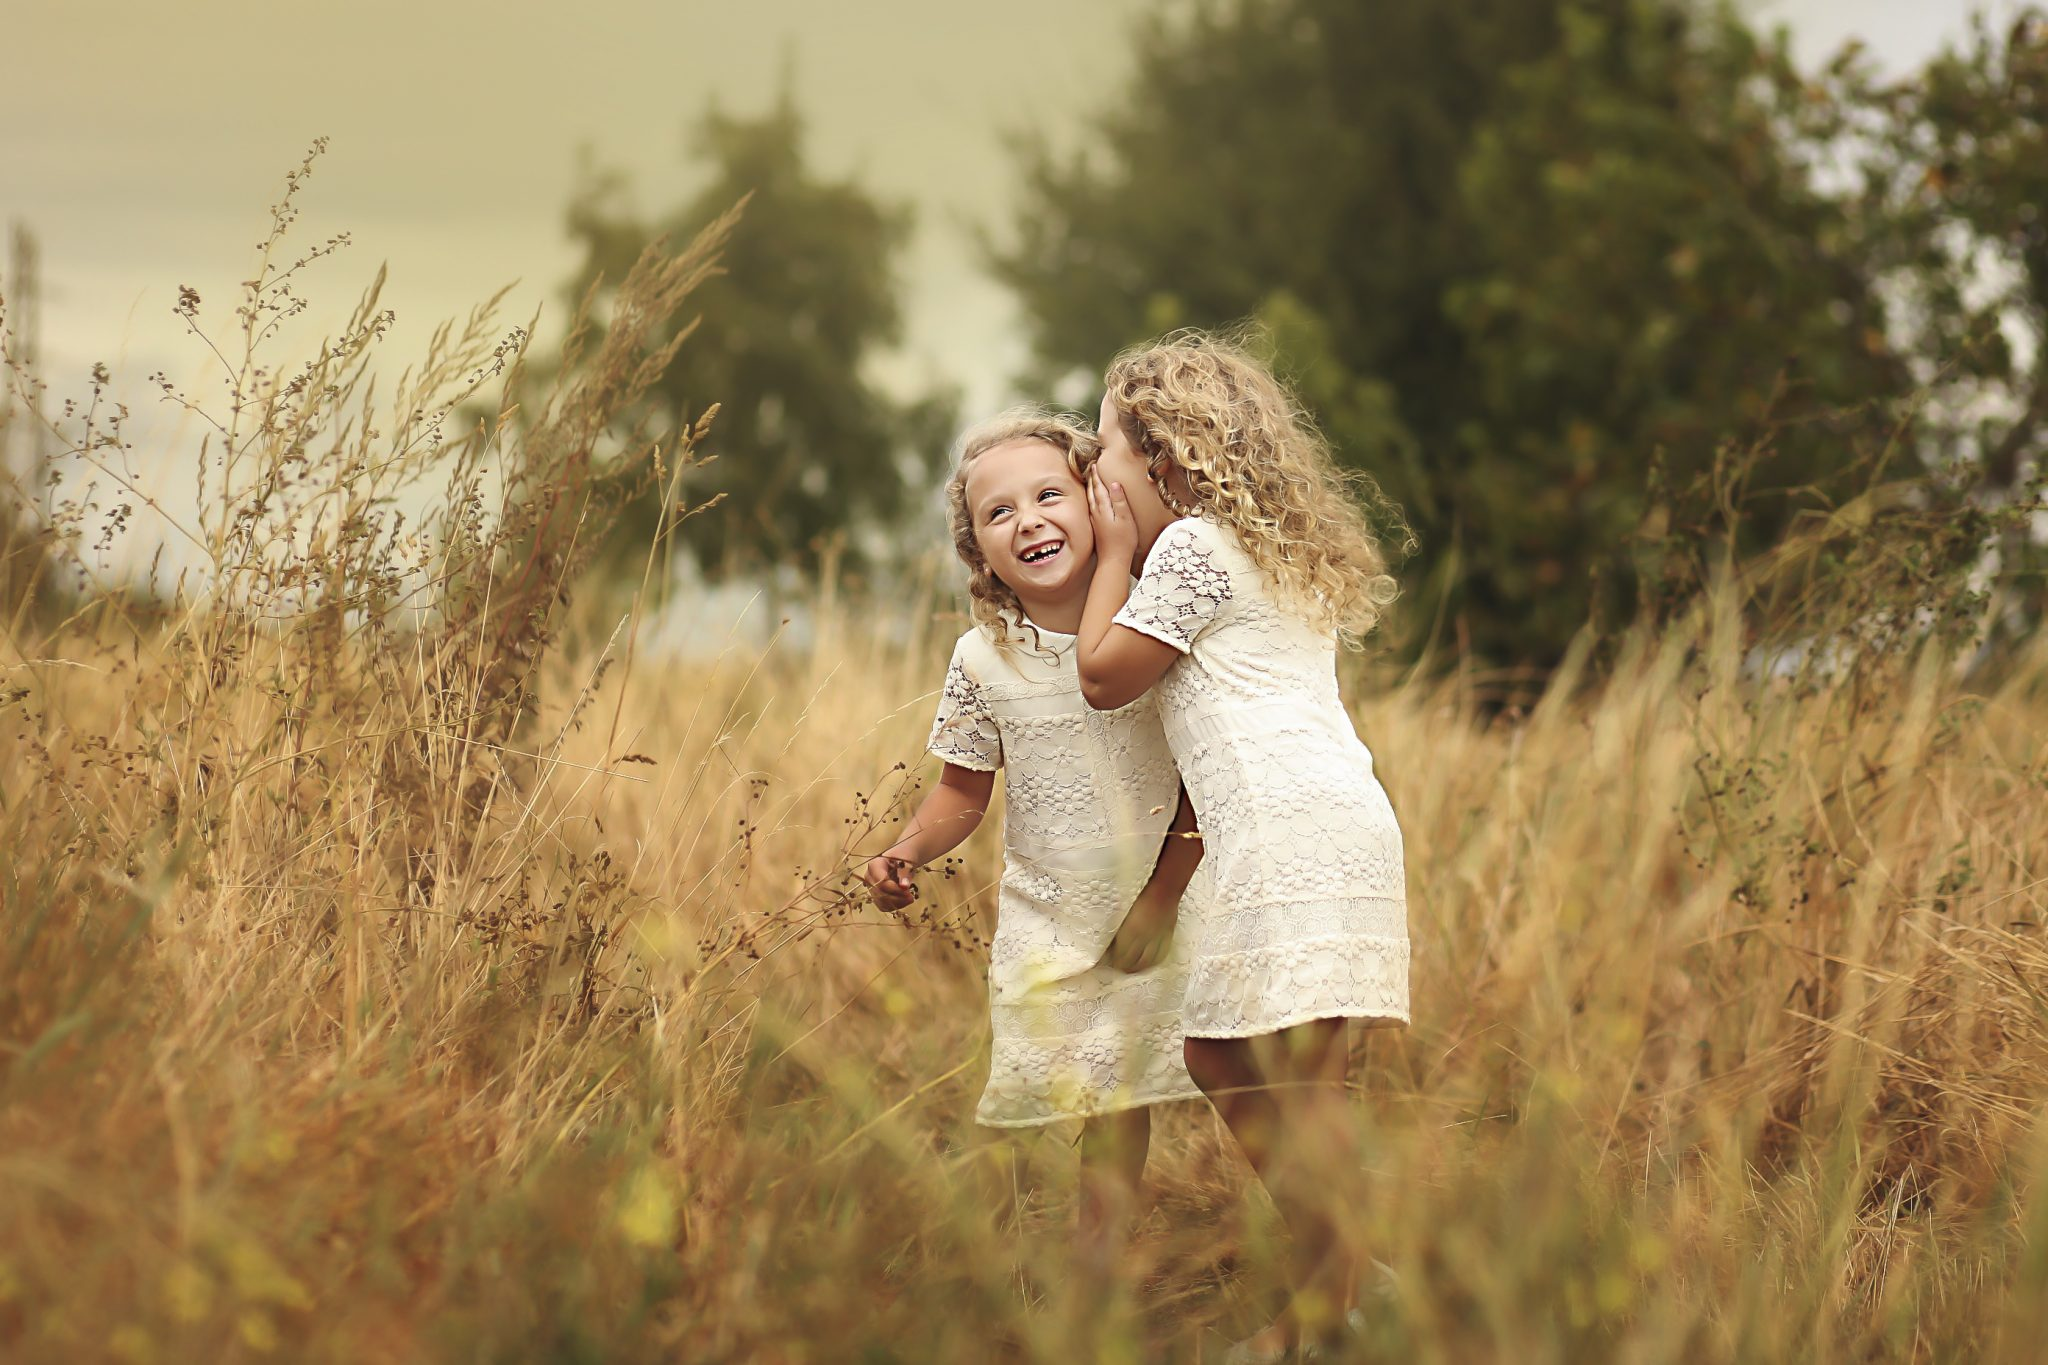 Sisters playing in long grass in summer twin girls whisphering and giggling in Kent